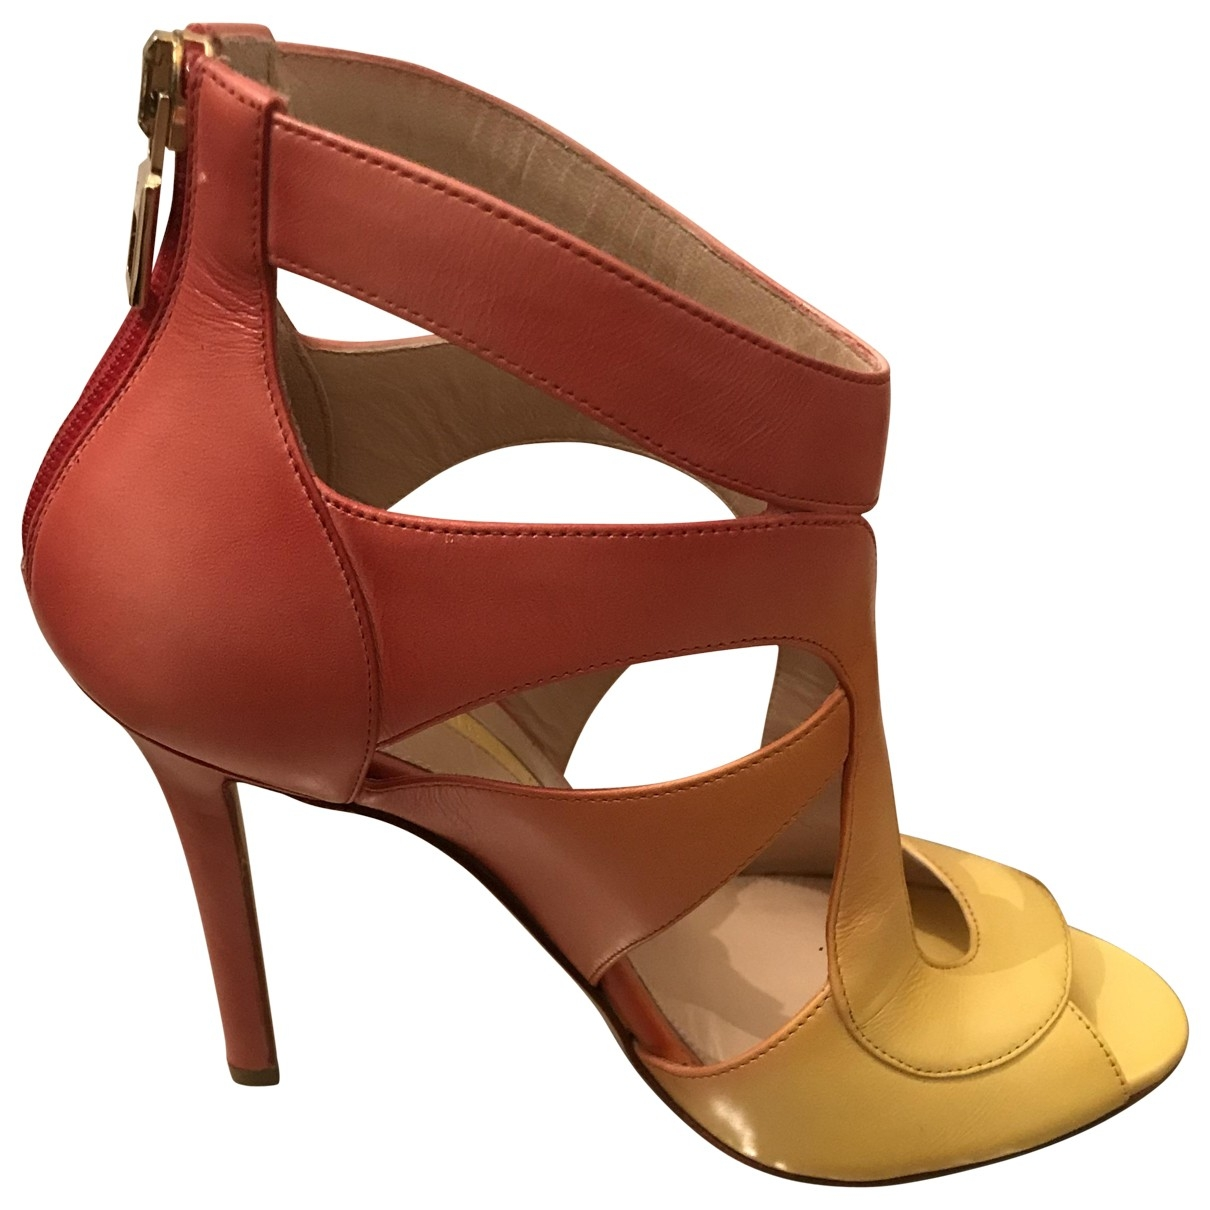 Elie Saab \N Yellow Leather Sandals for Women 35 EU